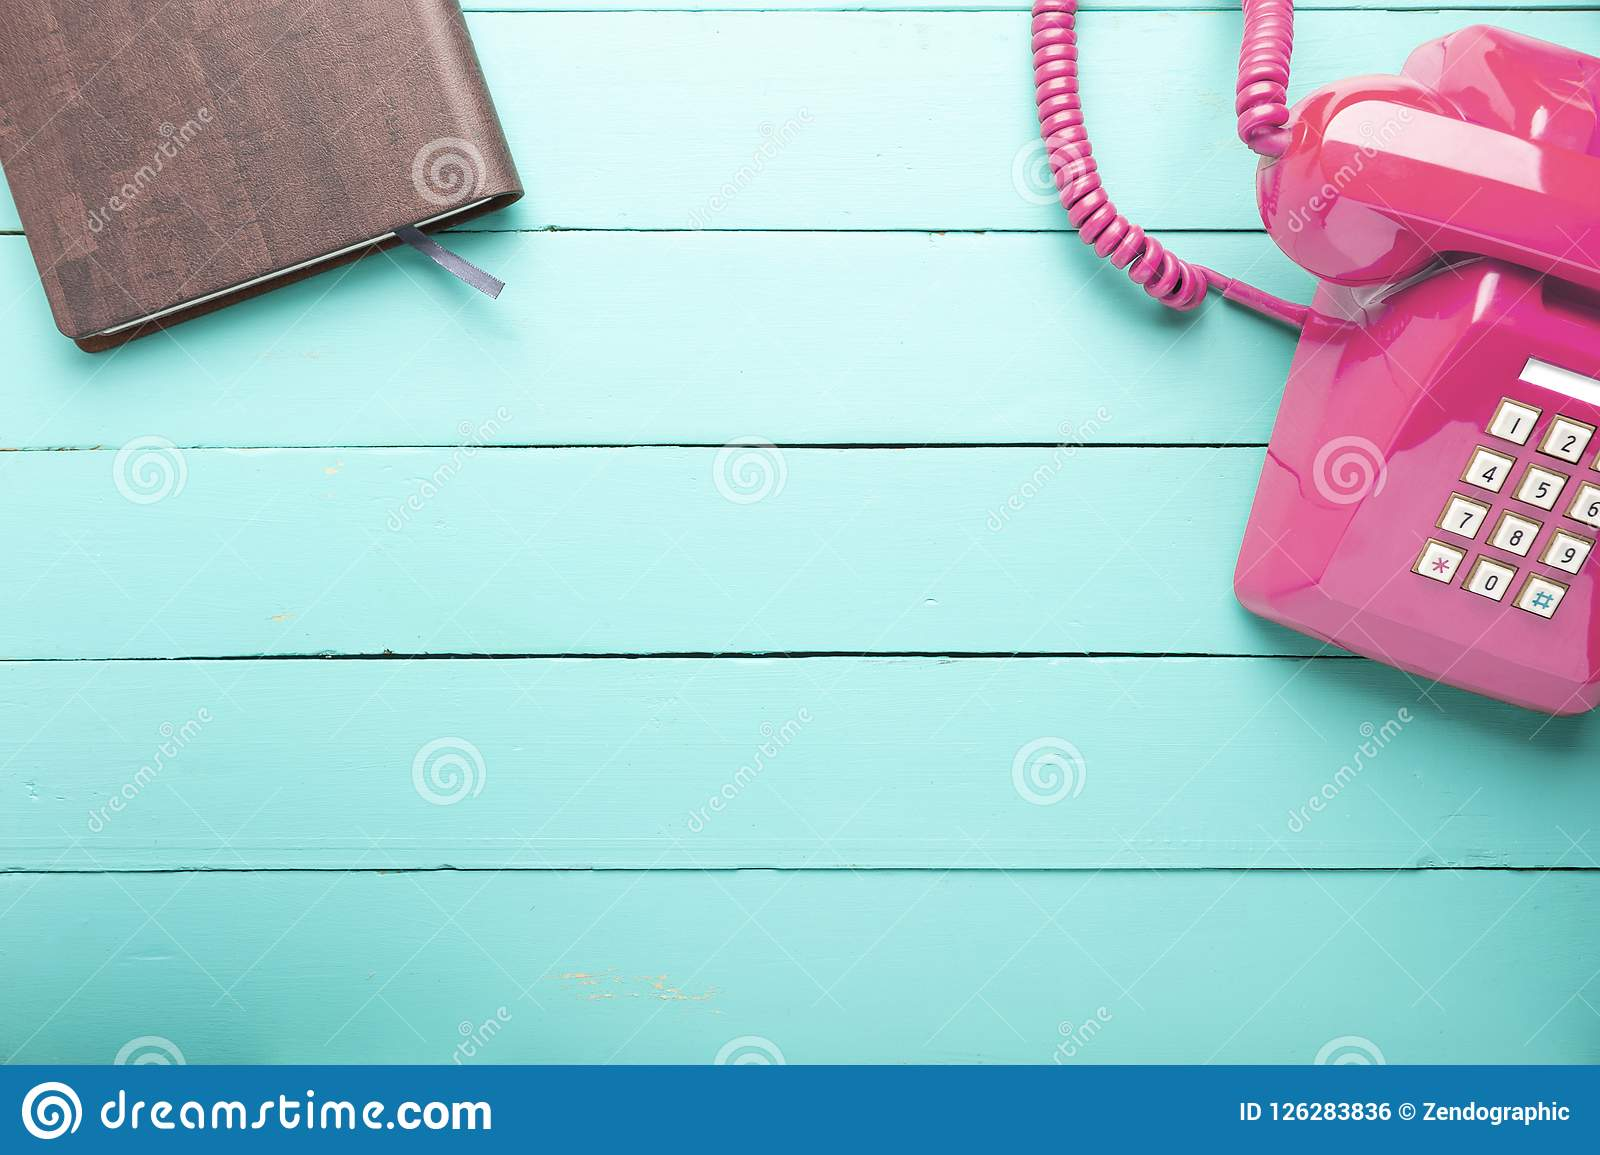 Classic pink telephone